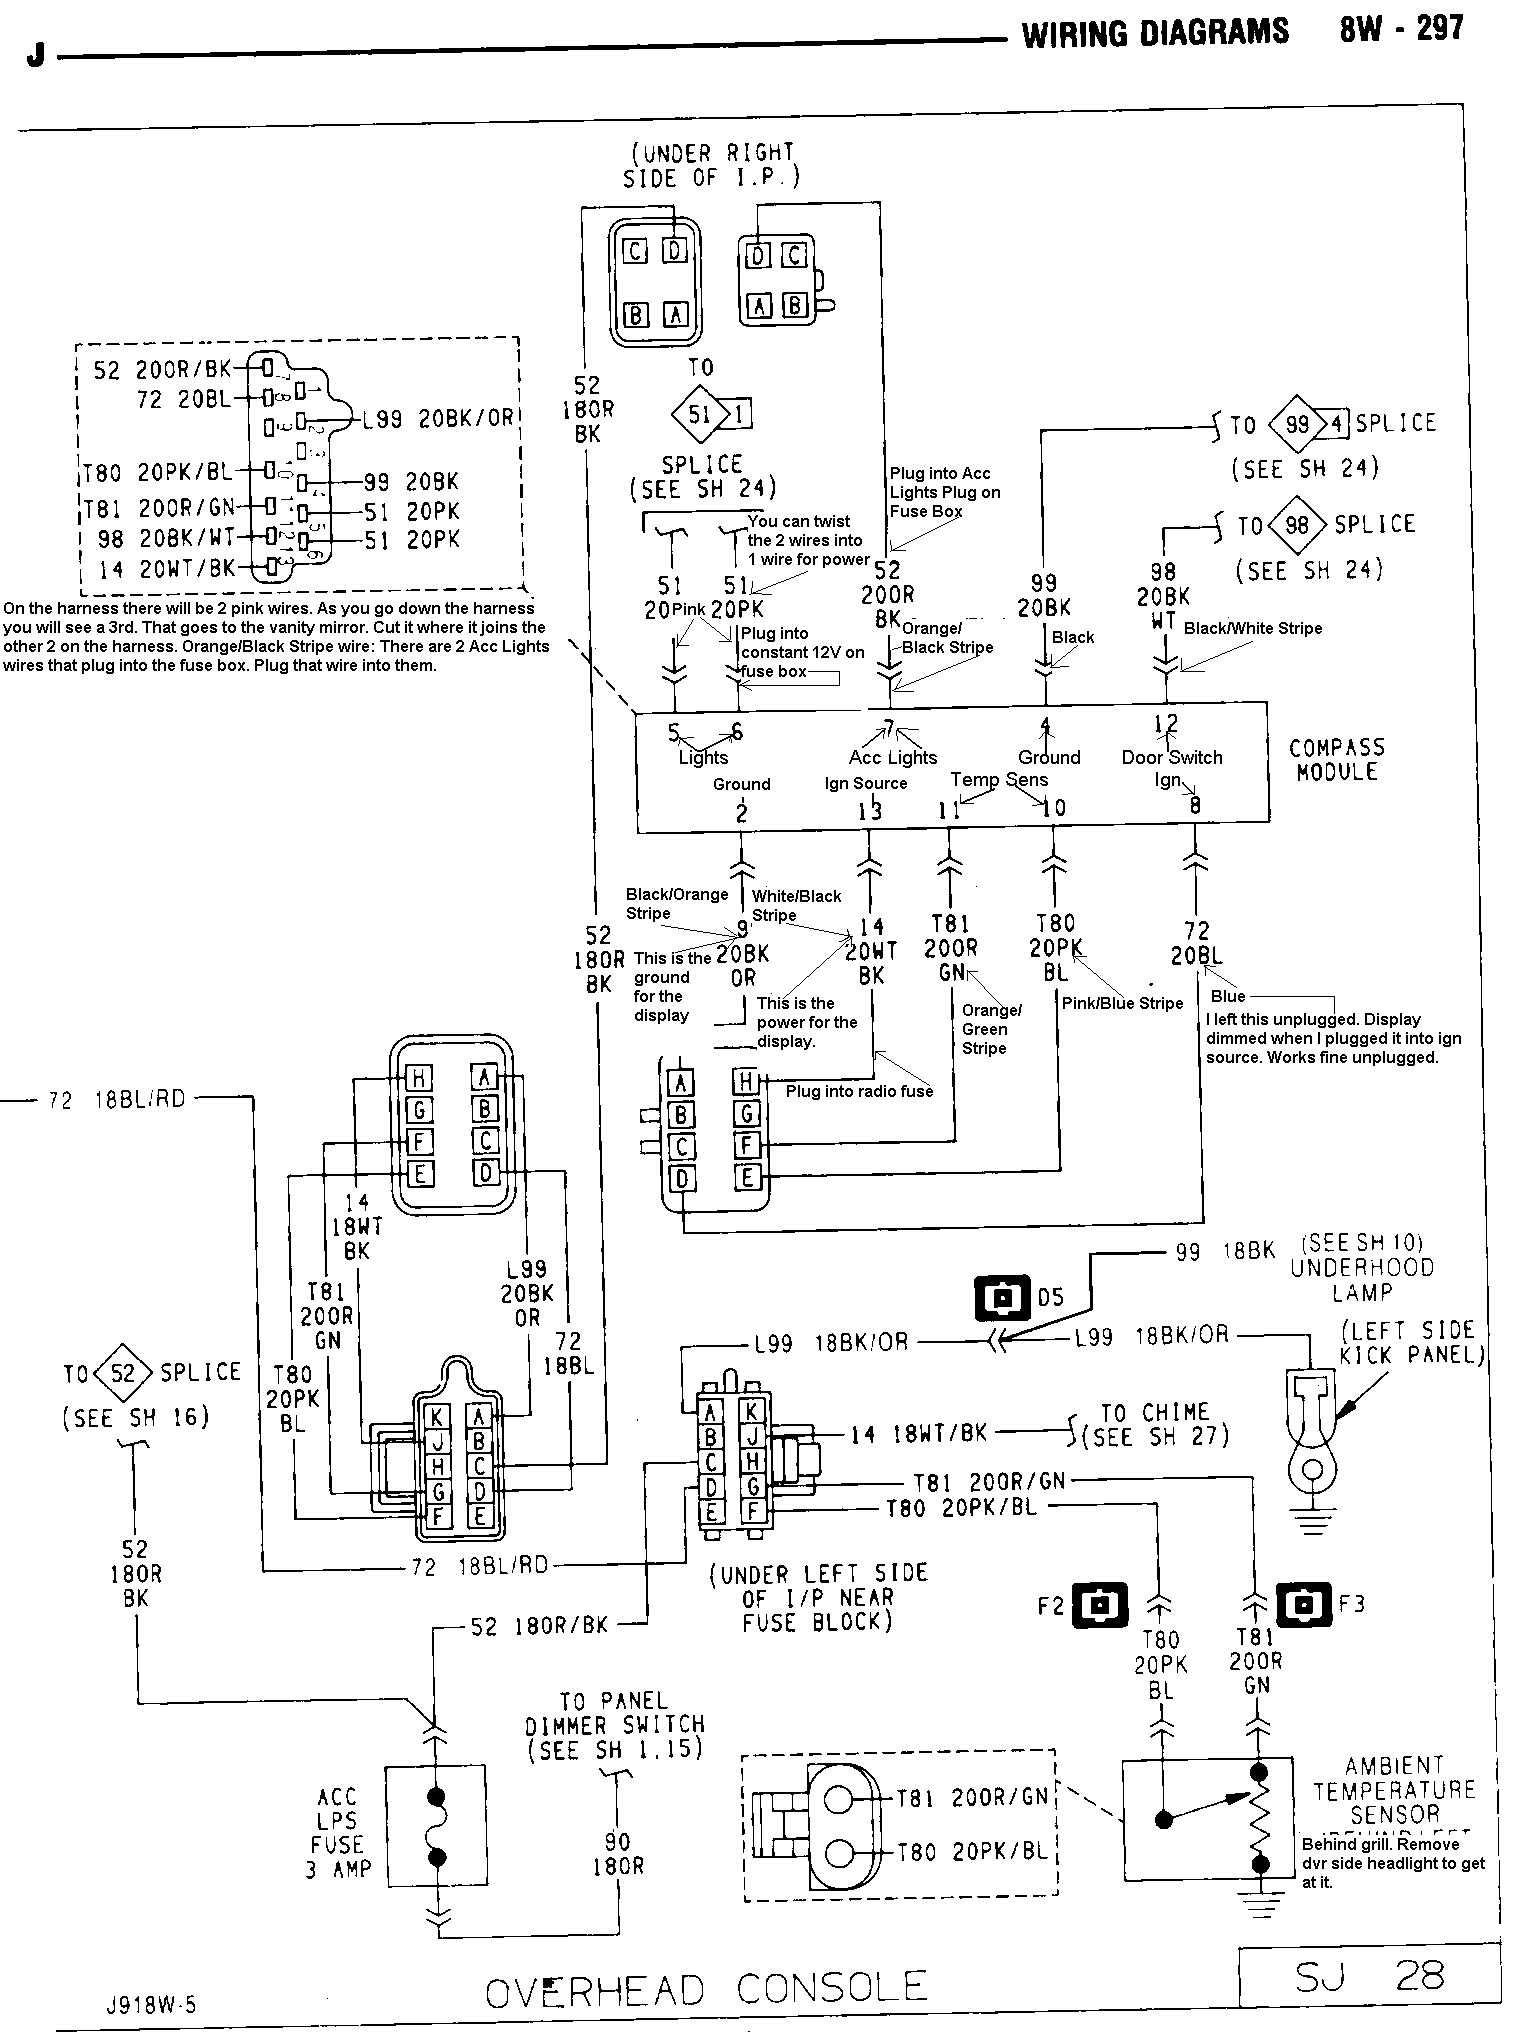 91consolediagrammodified tom 'oljeep' collins fsj wiring page jeep cherokee overhead console wiring diagram at honlapkeszites.co